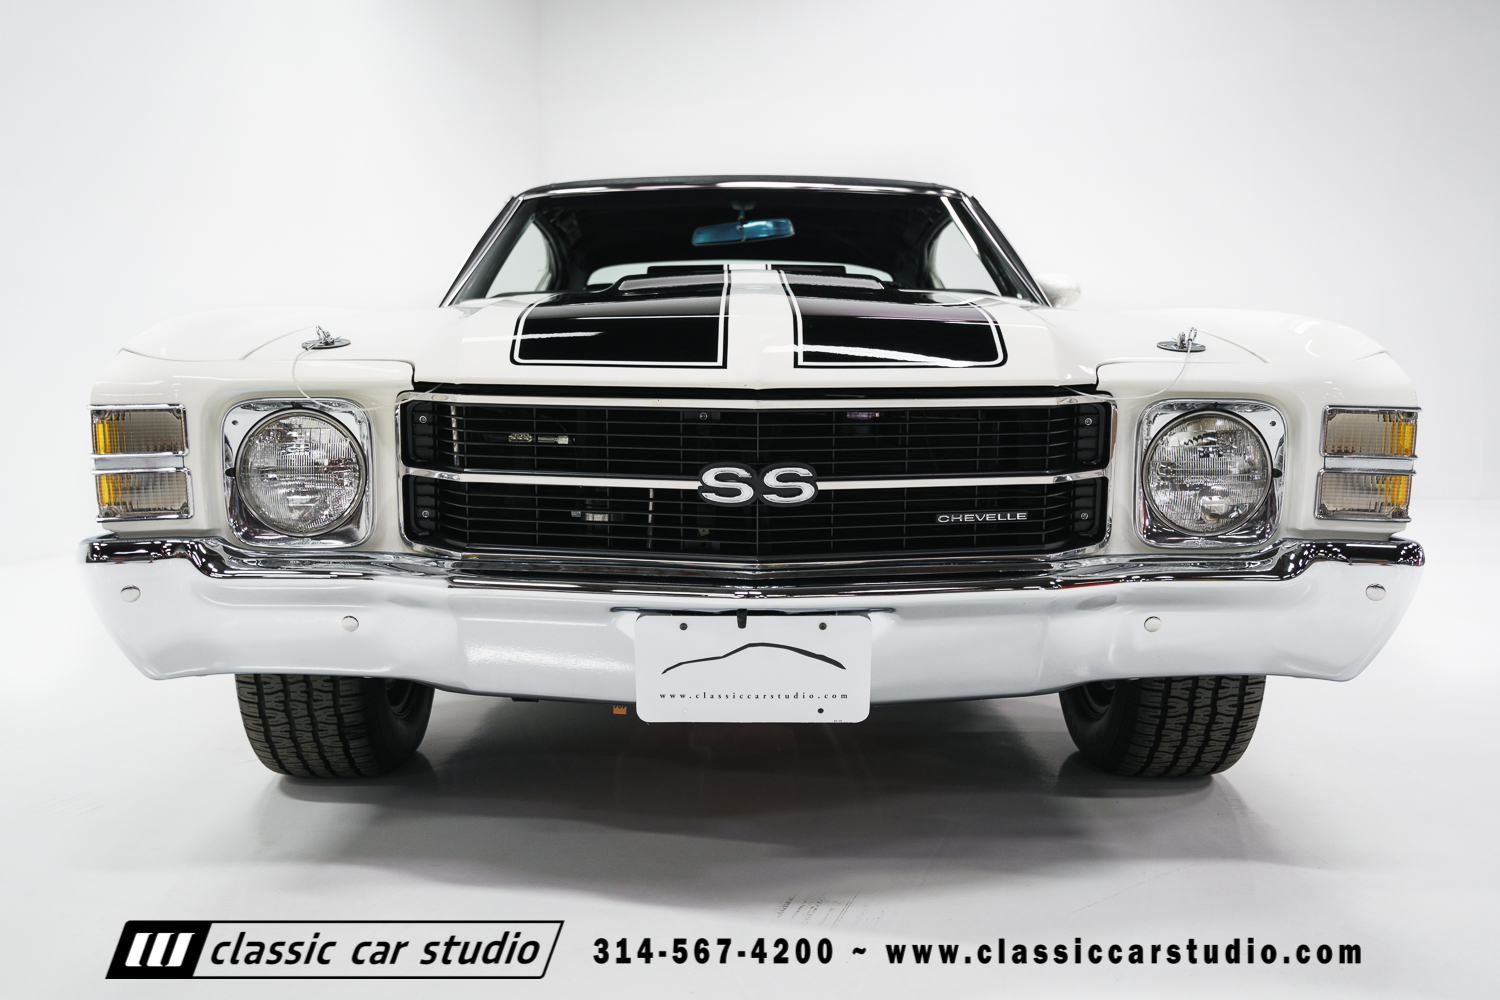 1971 chevrolet chevelle ss classic car studio. Black Bedroom Furniture Sets. Home Design Ideas